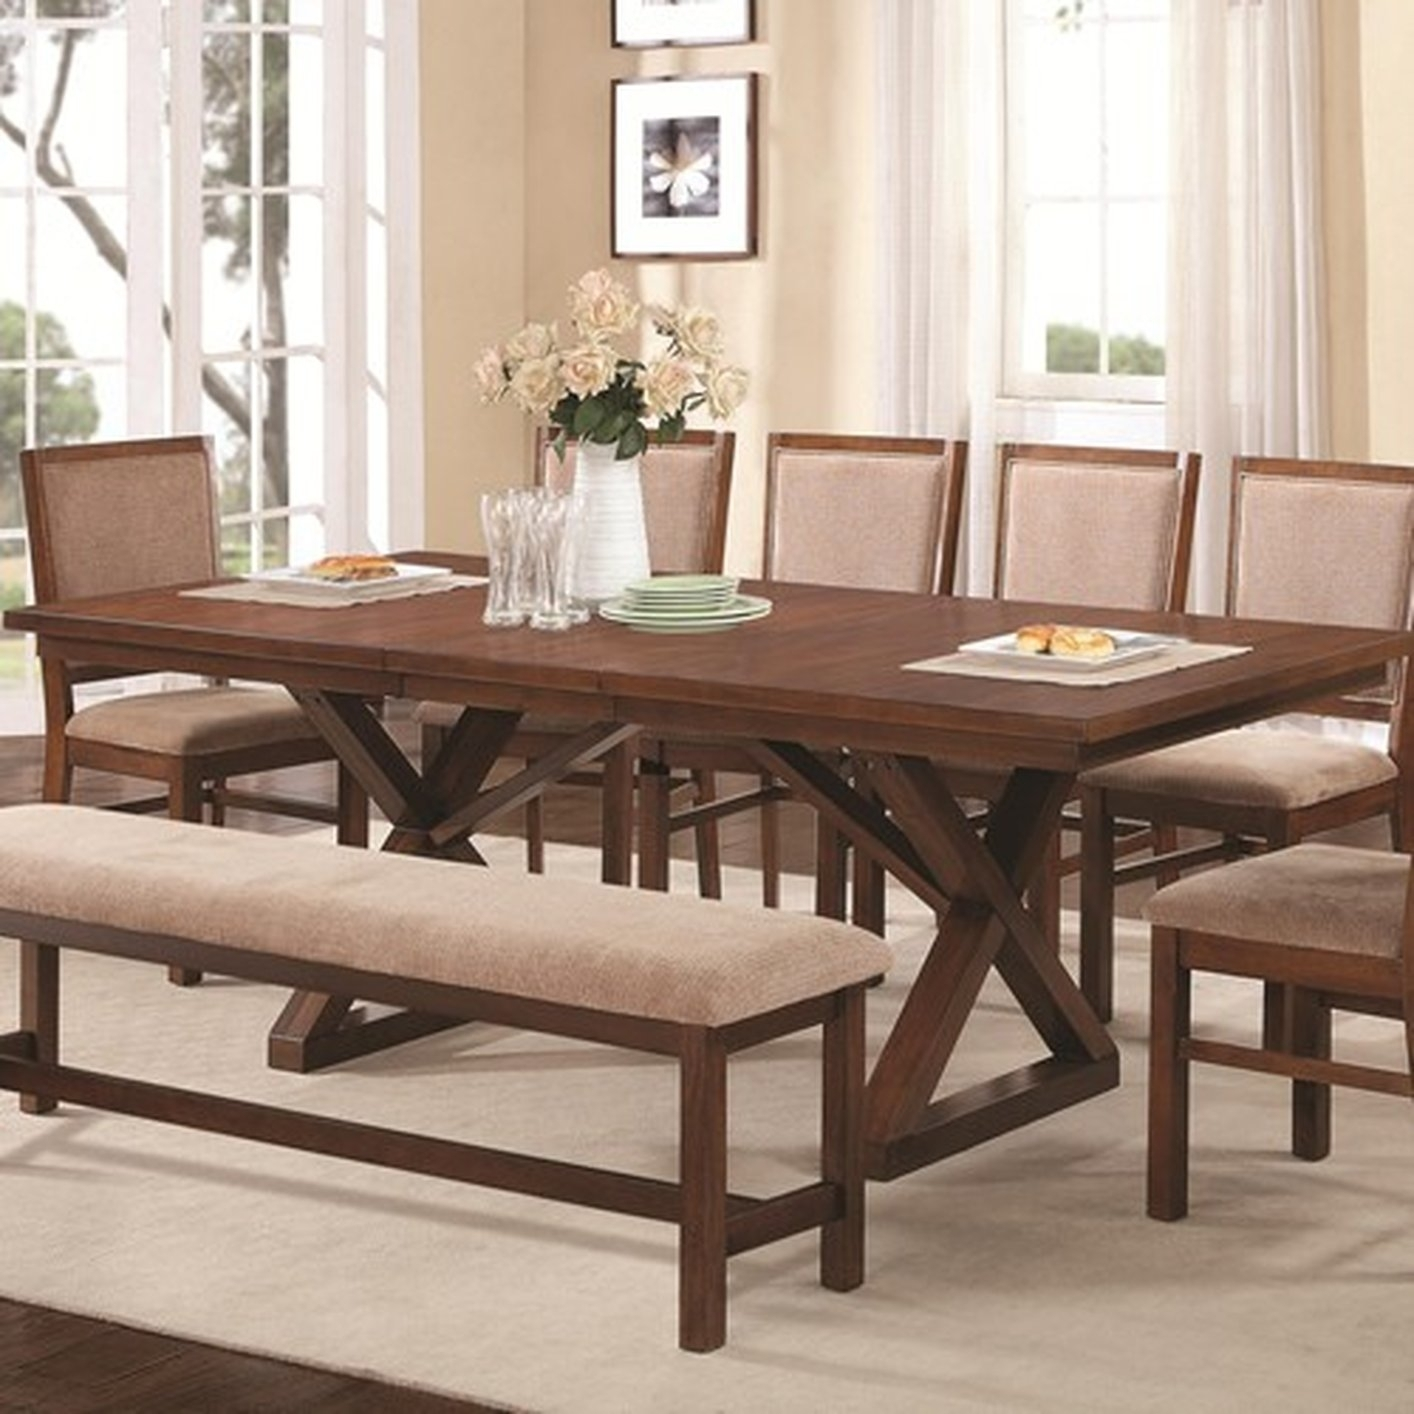 Brown Wood Dining Table – Steal A Sofa Furniture Outlet Los Angeles Ca With Regard To Sofa Chairs With Dining Table (View 6 of 10)